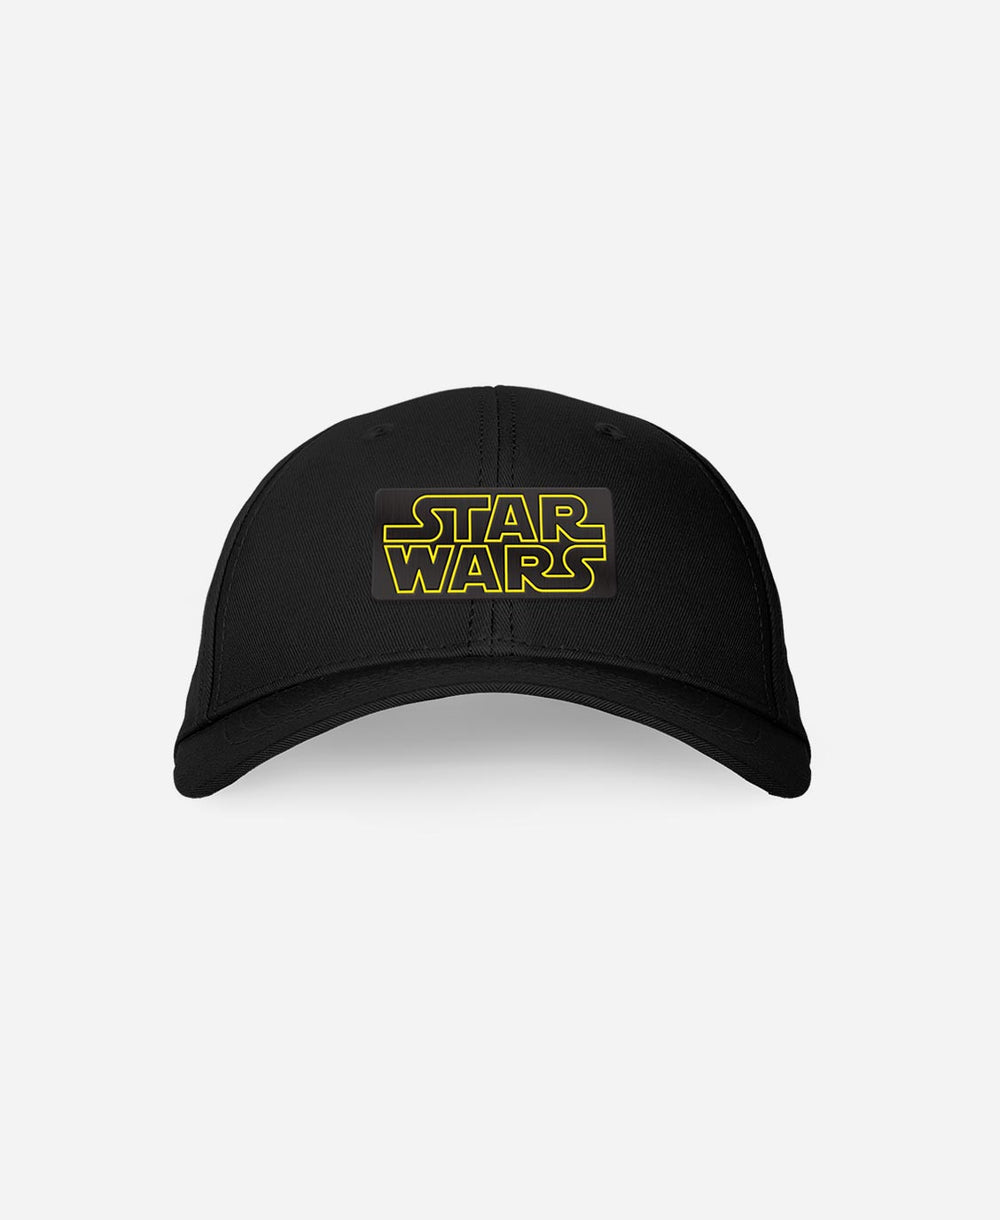 40% off Star Wars Franchise Cap